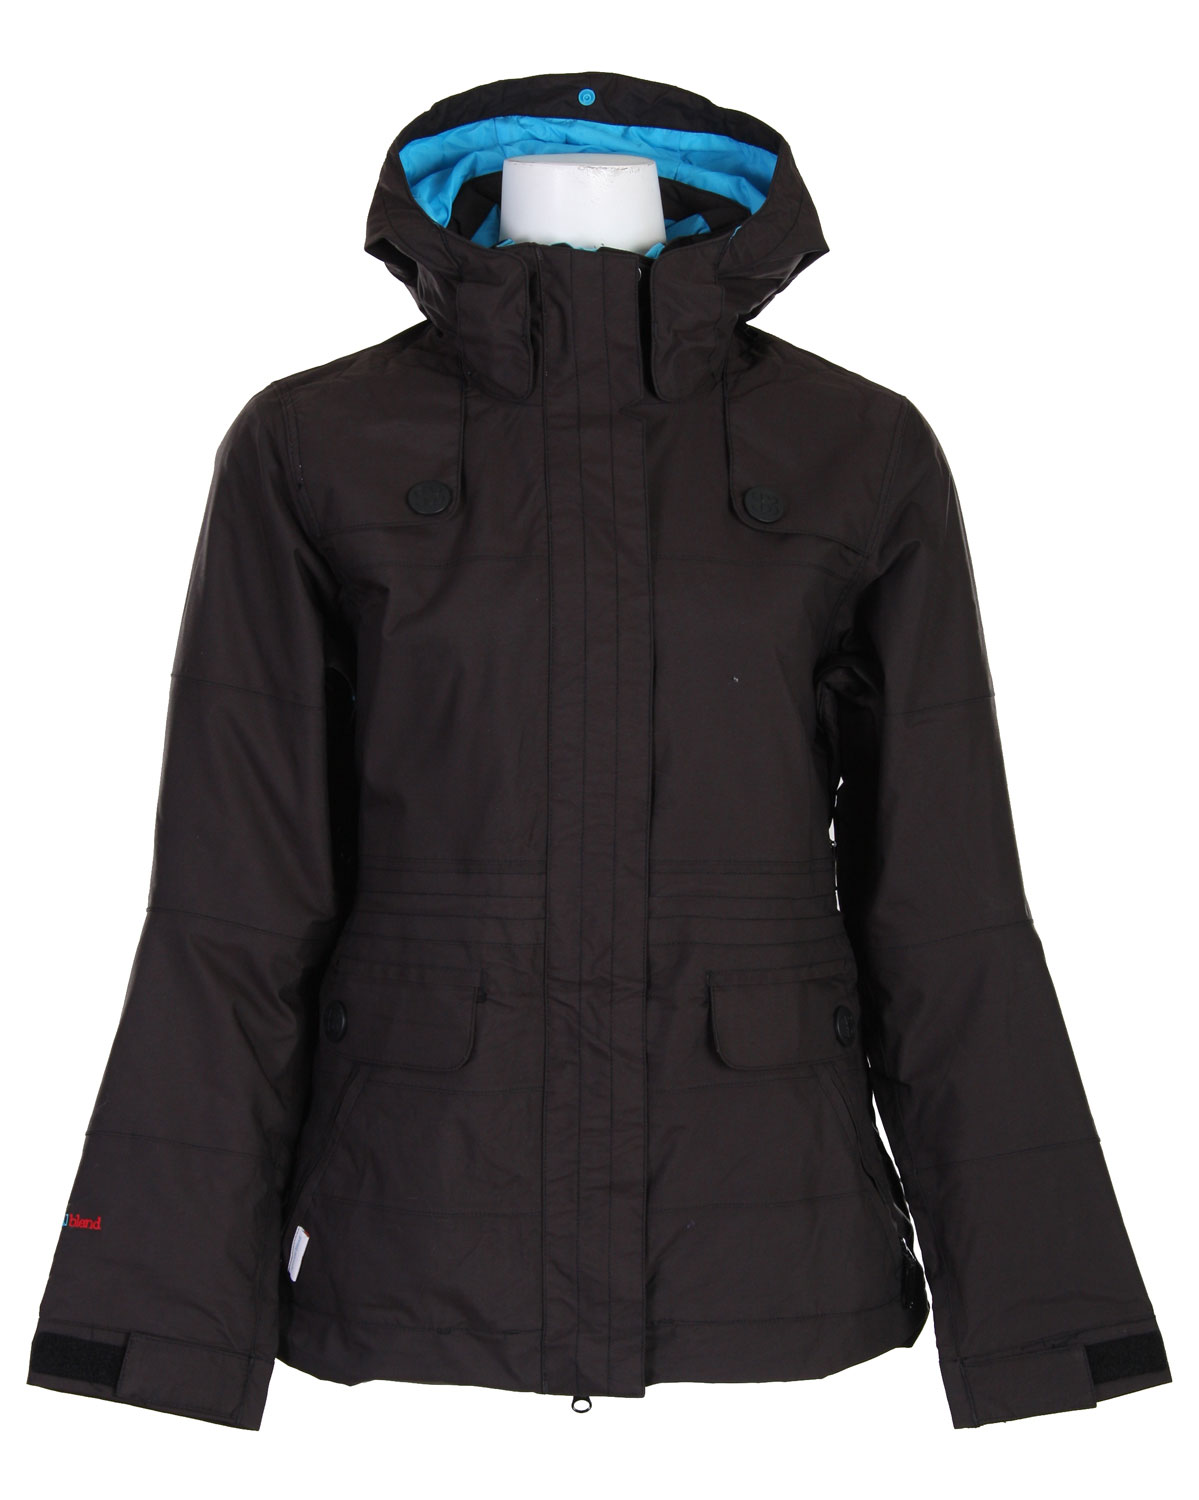 "Snowboard Snowboarding in style and maintaining performance is an essential element to any kind of active wear. Luckily, the Special Blend Joy Snowboard Jacket Shocker is a durable product that enhances performance for any snowboarding enthusiast. The women's jacket has loose fit and easy fold adjustable gusseted cuffs with articulated elbows and an attached waist gaiter. Featuring goggle pockets and hand warmer pockets, the jacket will surely fit your needs on the slopes. The jacket also has a removable liner for increased flexibility.Key Features of The Special Blend Joy Women's Snowboard Jacket: 10,000mm Waterproof 10,000g Breathability Calyx Group Women's Shell Jacket Coated Mini Twill Shed Hood Large Snap Detail Waist Draw Cord Loose Fit Roll Tape 2.25"" double outer front storm flap 2.25"" front storm flap 3/4"" welts to protect vents Adjustable easy-fold gusseted cuffs Articulated elbows Attached waist gaiter Center back hood adjuster Comfort material on the chin Custom lift ticket D-ring Fitted hood with aperture adjustment Flex gussets Fully taped seams Function and comfort designed interiors Fused PVC/taffeta inner drop tail Goggle pocket Gusseted pleats Key clip in hand-warmer pocket Multipurpose inner utility pockets Multiple venting options Powder skirt Powder skirt to pant Velcro system Removable liner system Ride/relax gaiter system Snag-prevention tape in vents Snap holder for hood secure Super BlendTech DWR Waist-cinch drawcords hidden in front pockets Water-repellant inner storm flap Yo yo pass holder at inner hem - $87.95"